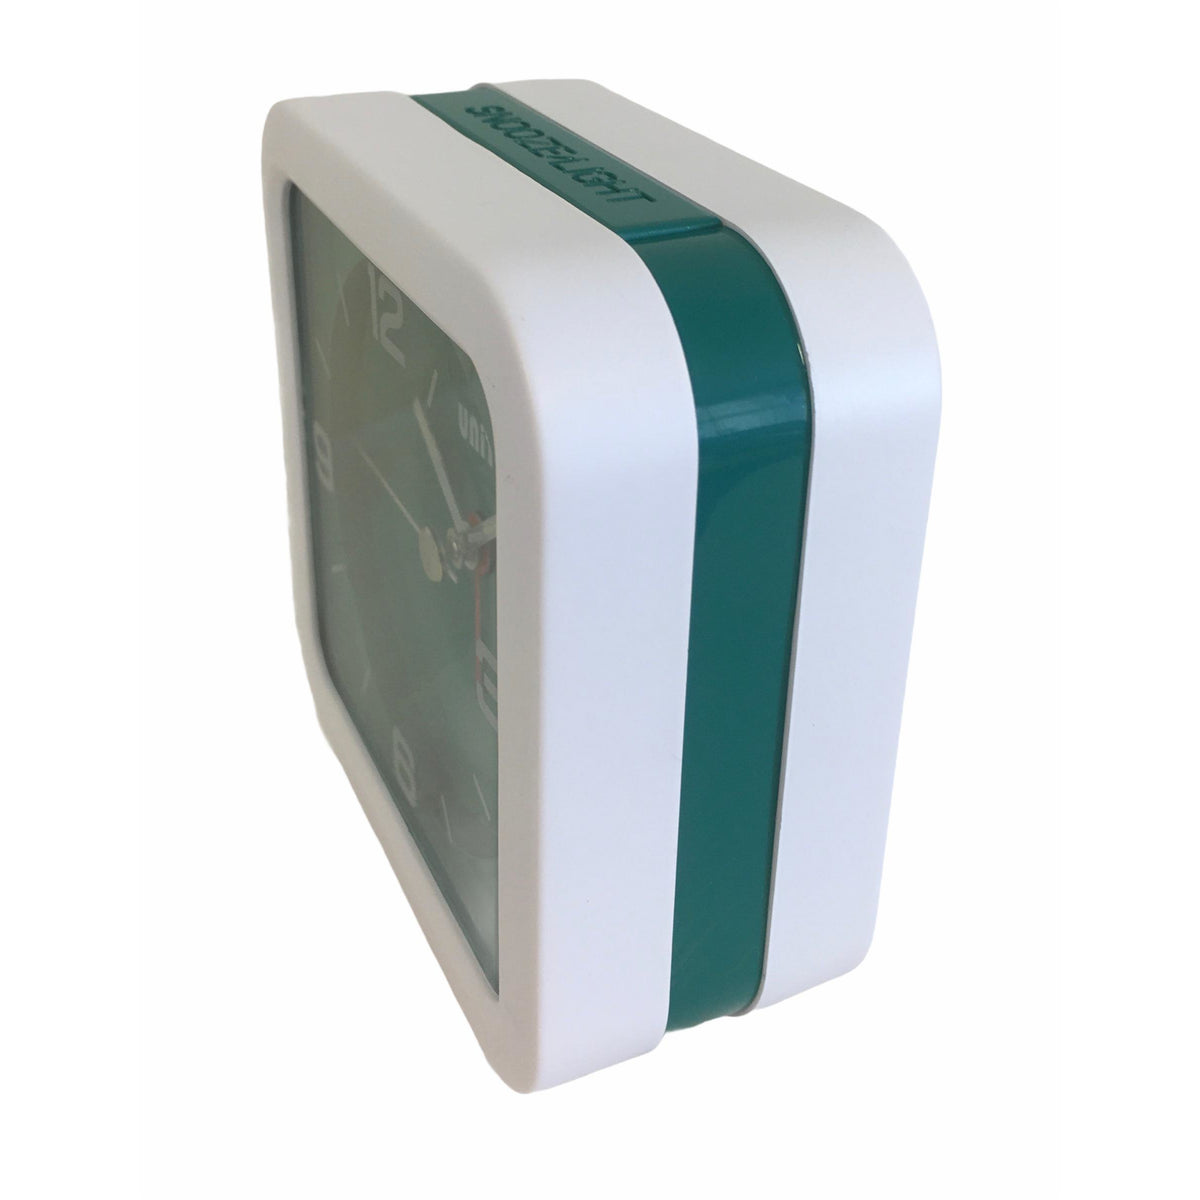 Square Beep Alarm Clock in Green and White